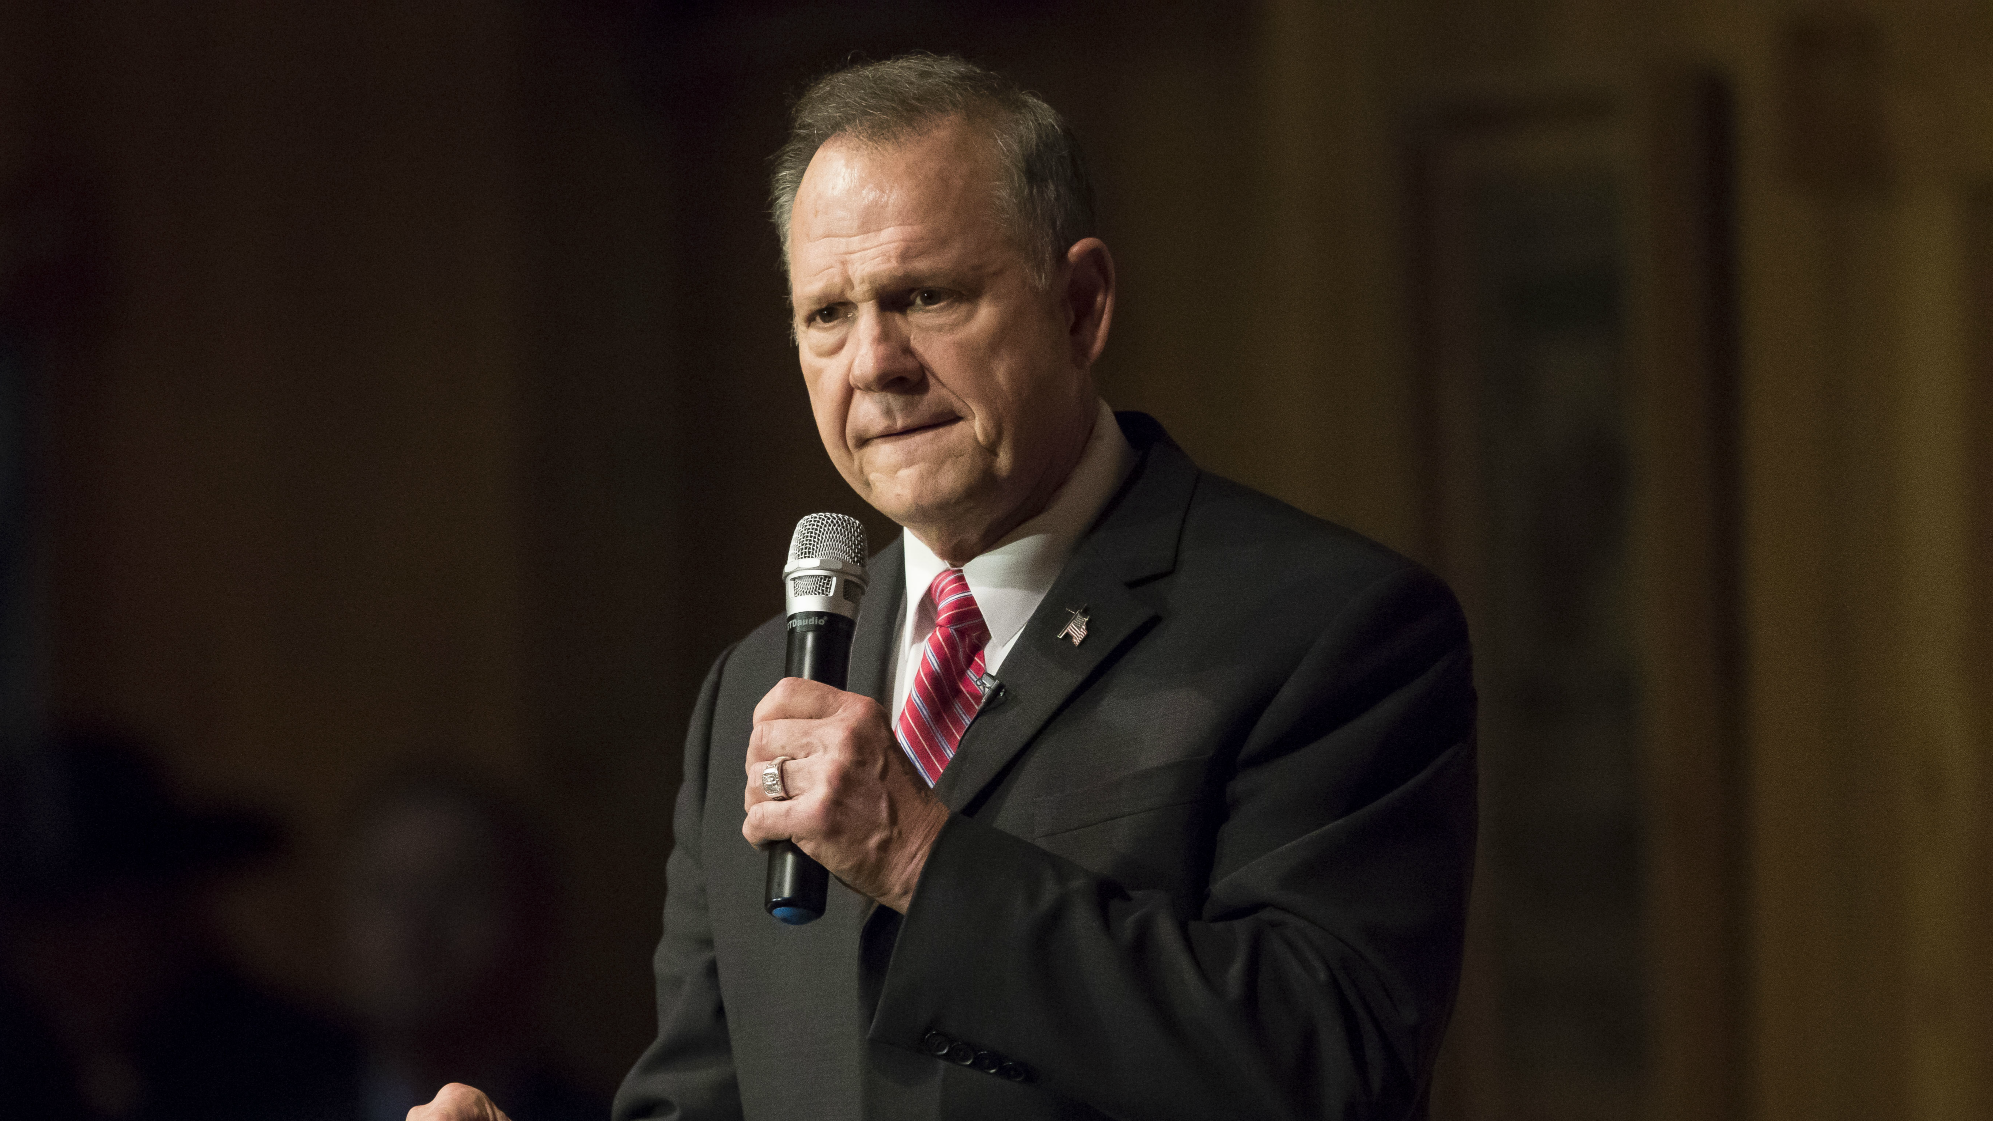 Moore Spox: He 'Probably' Still Thinks Homosexual Conduct Should Be Illegal